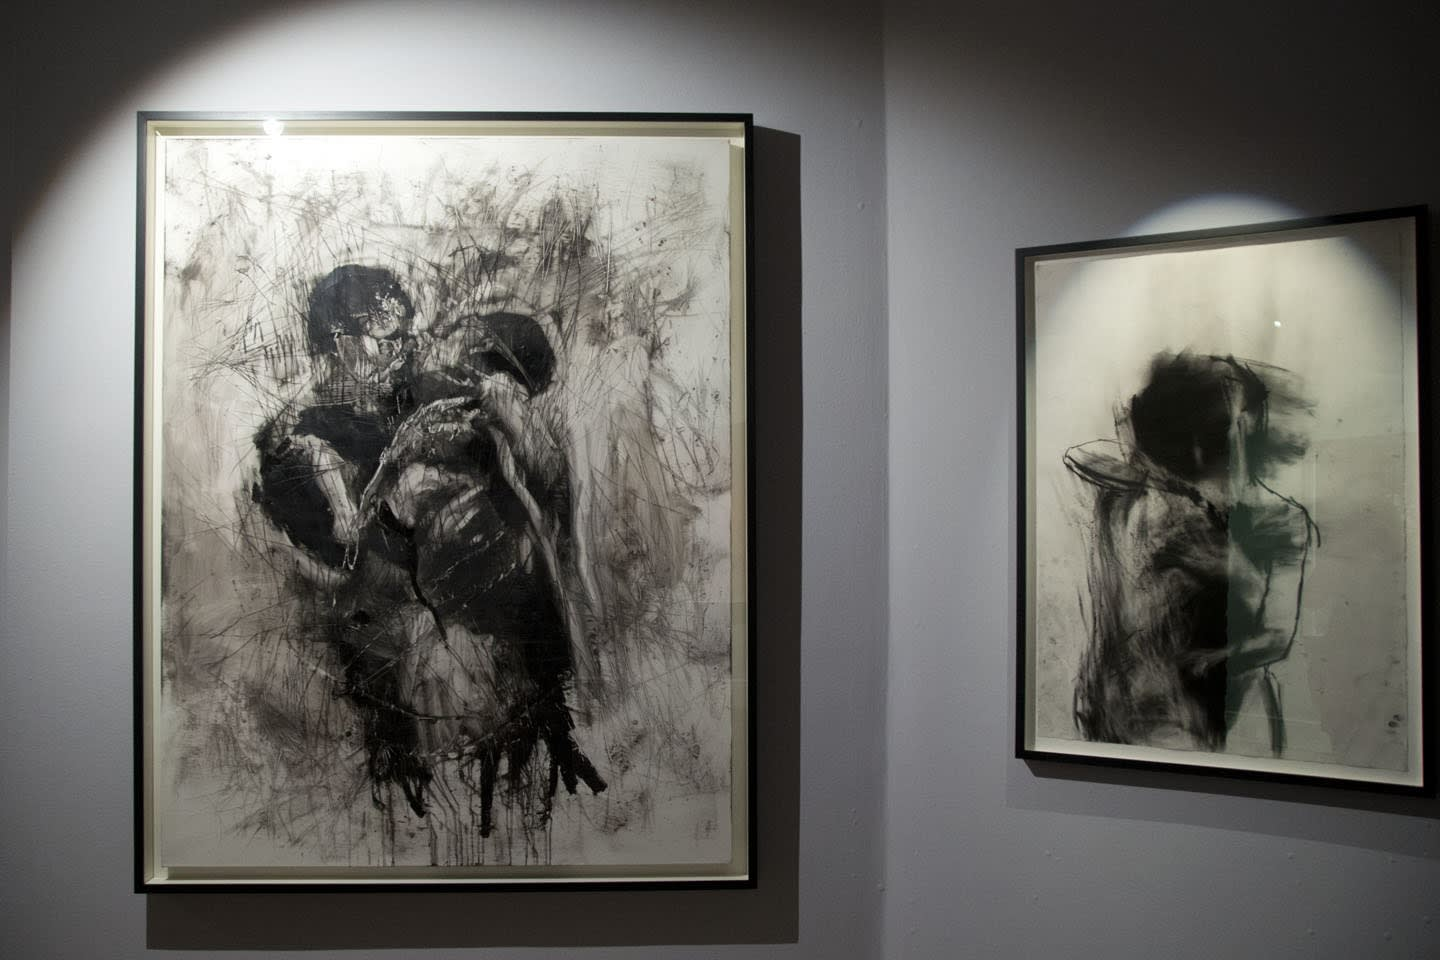 Antony Micallef | Study of an Embrace